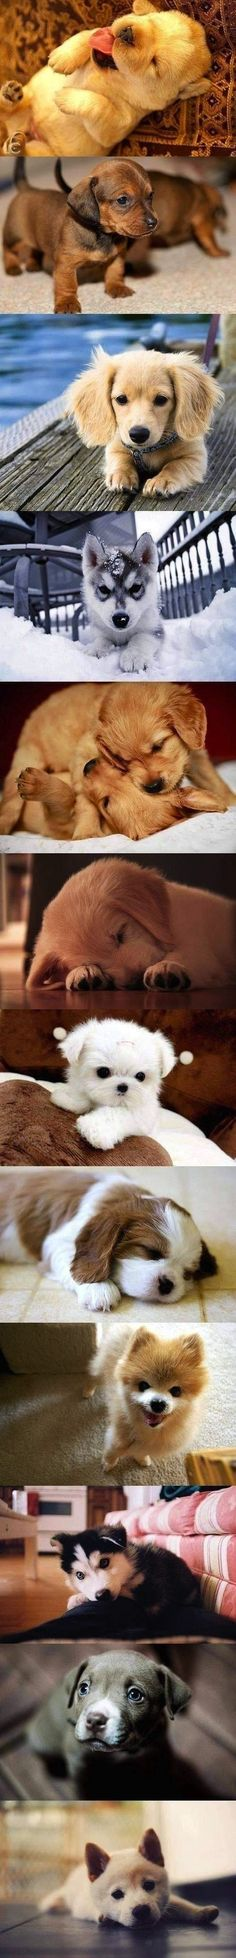 ♥ puppies warm the heart